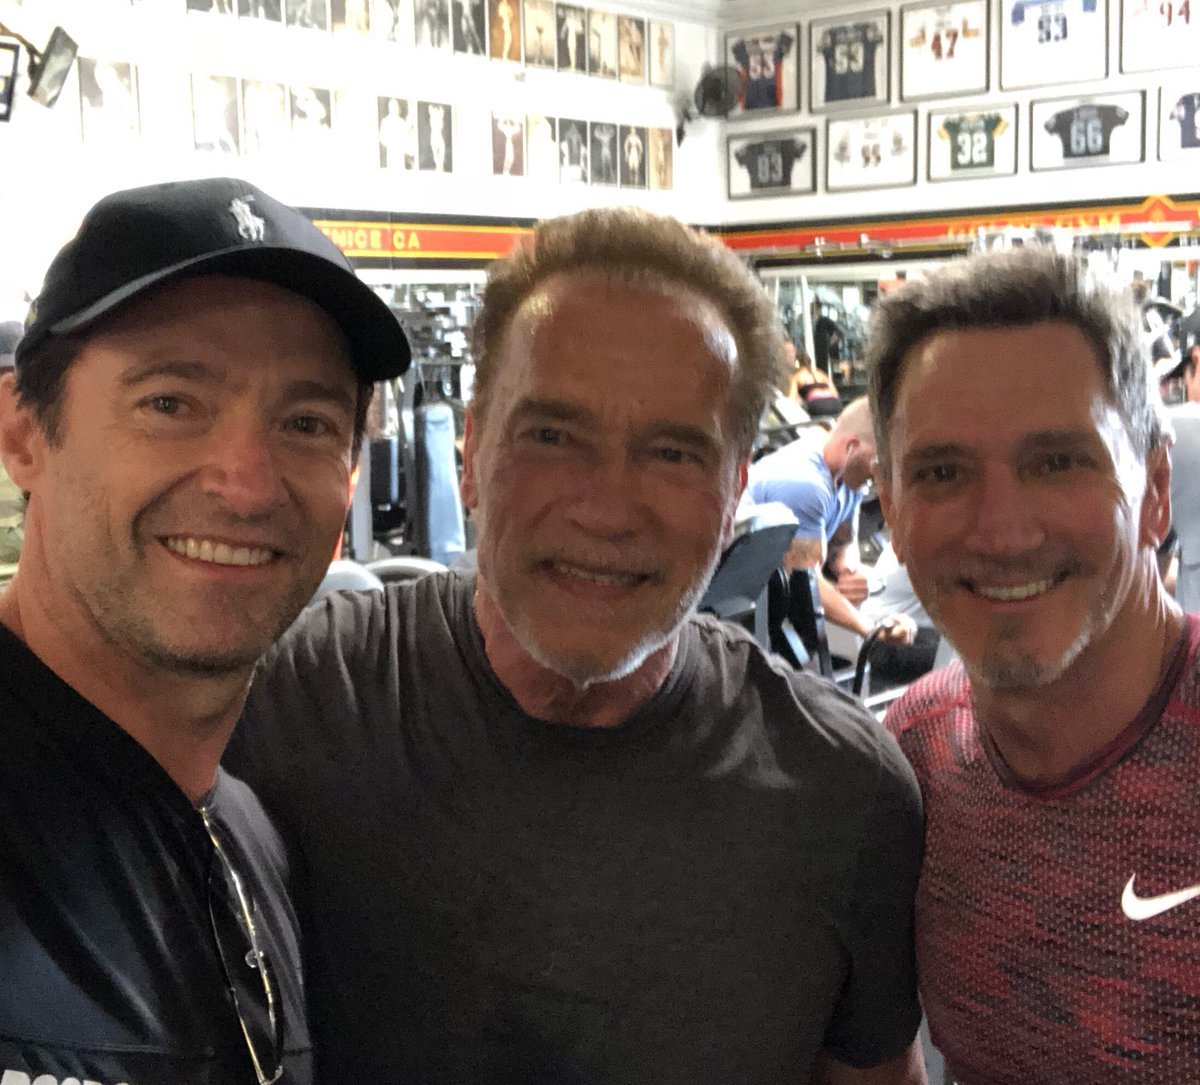 What a way to spend 4th.  With @Schwarzenegger and Pete at the original @GoldsGym in Venice. #FourthofJuly2018 https://t.co/F83o3HS7K0